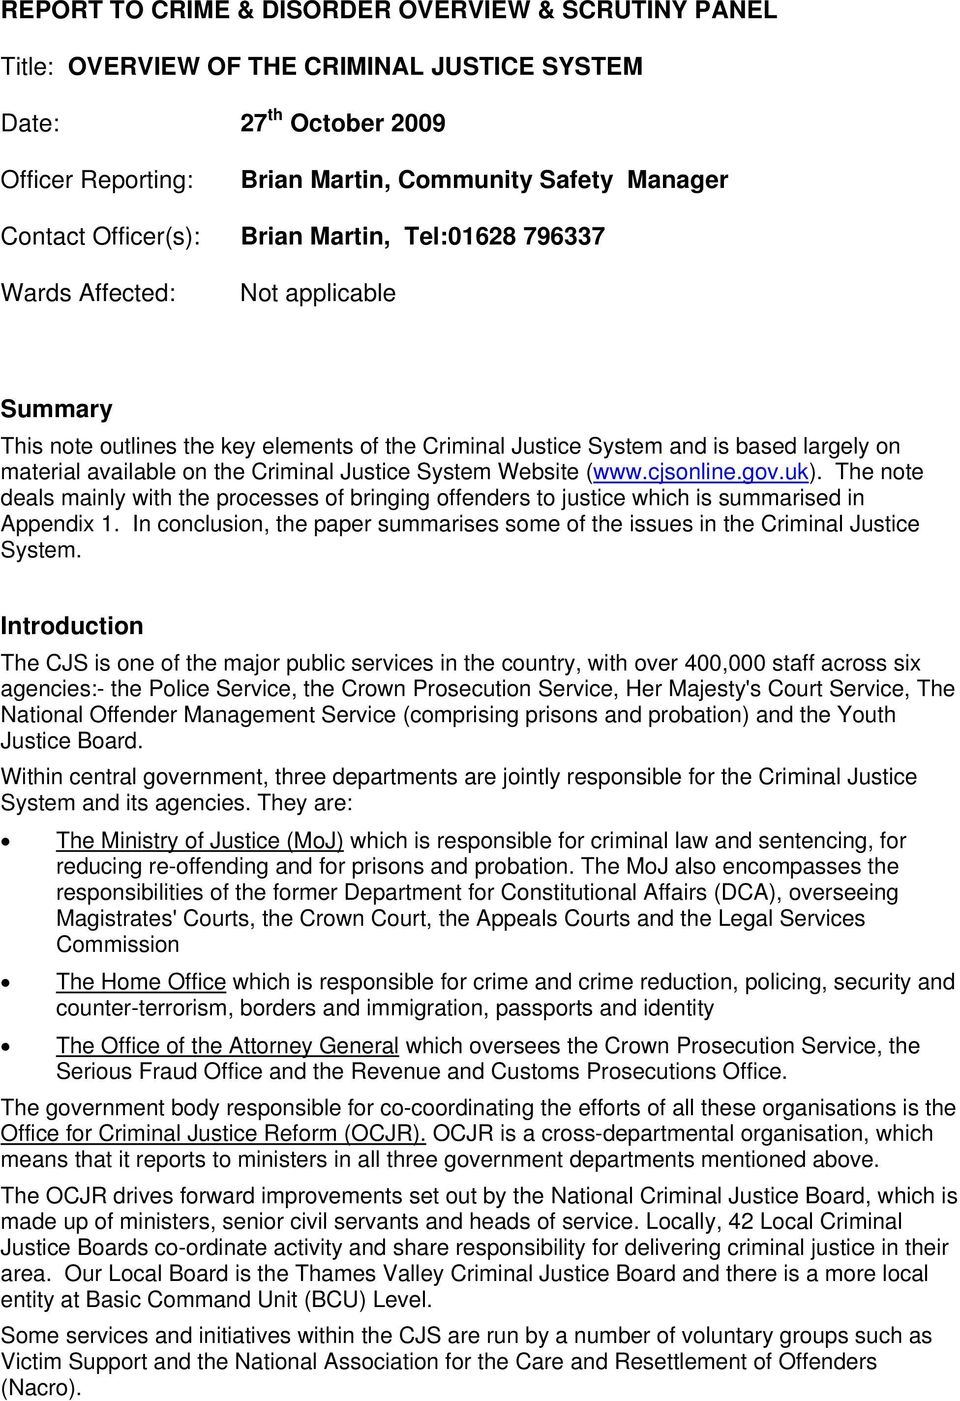 Criminal Justice System Website (www.cjsonline.gov.uk). The note deals mainly with the processes of bringing offenders to justice which is summarised in Appendix 1.